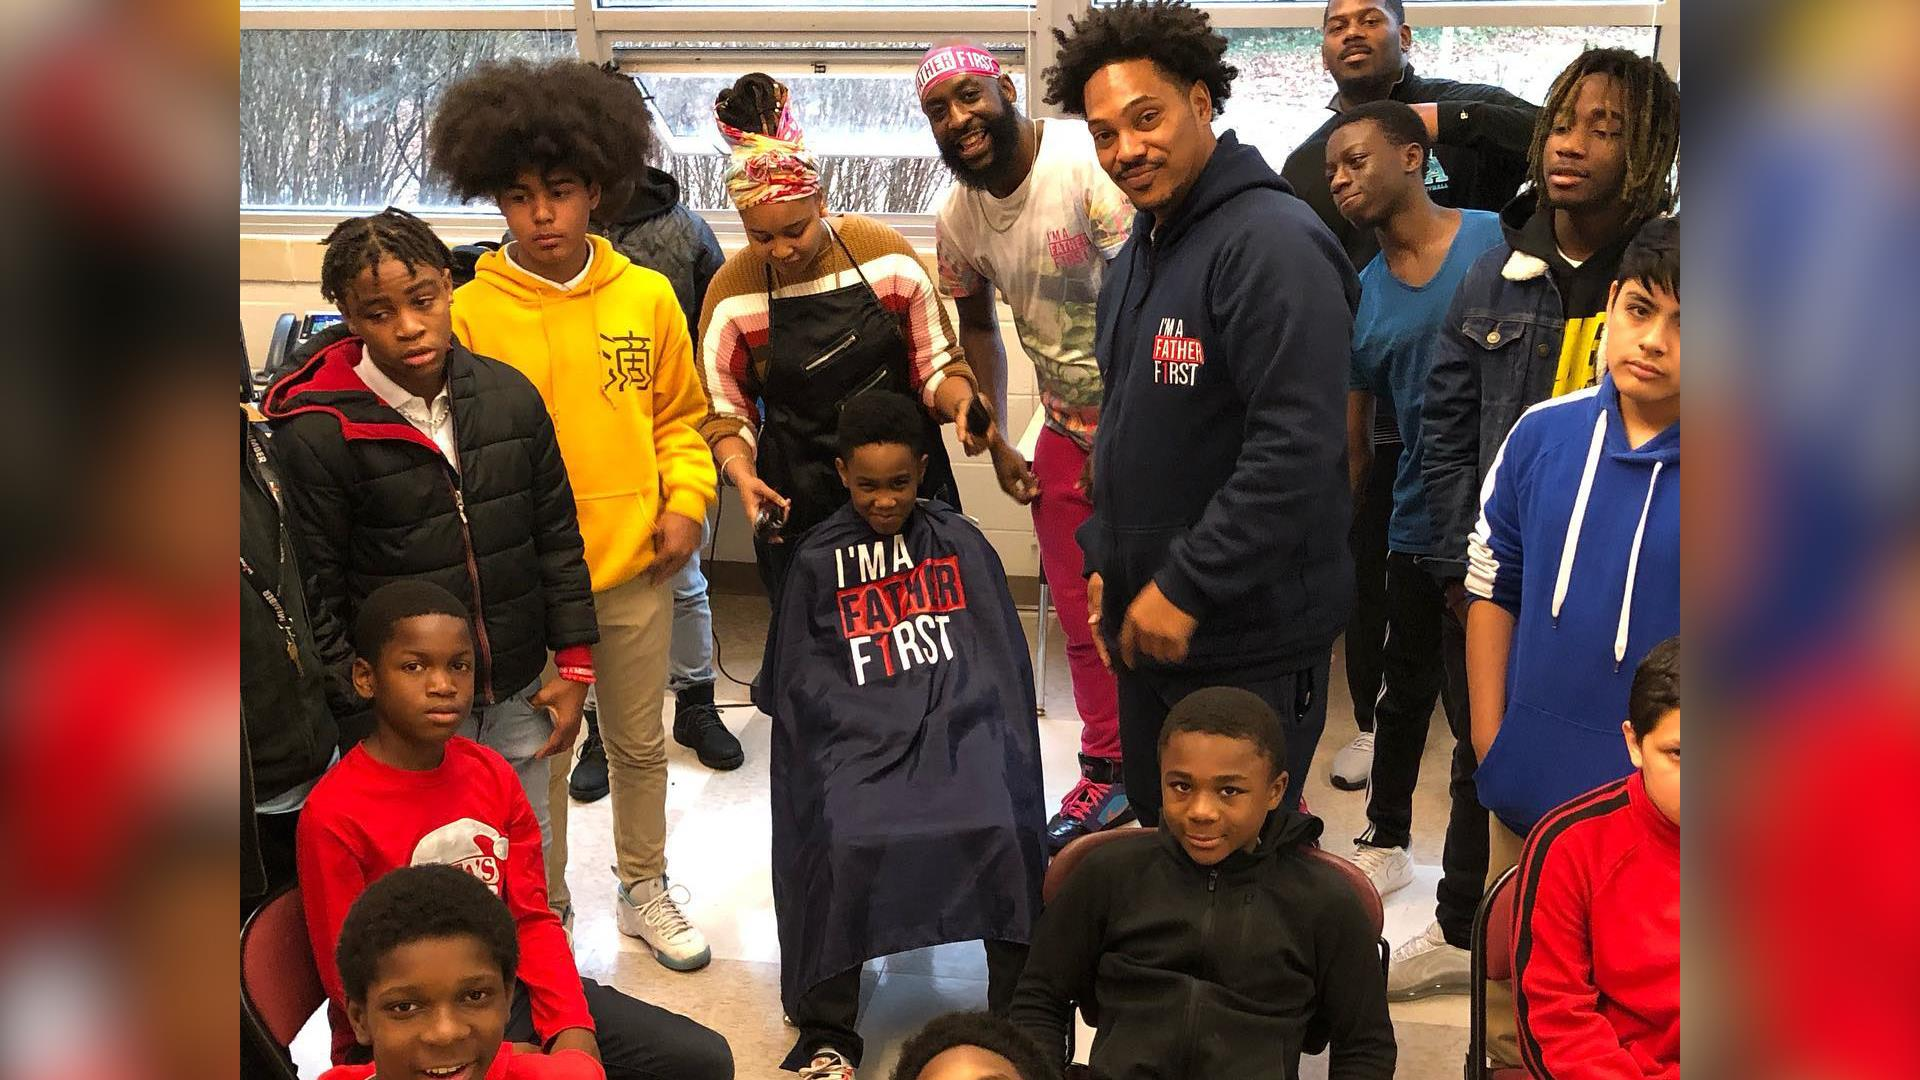 I'm a Father F1rst: Atlanta dads start movement to help fatherless homes